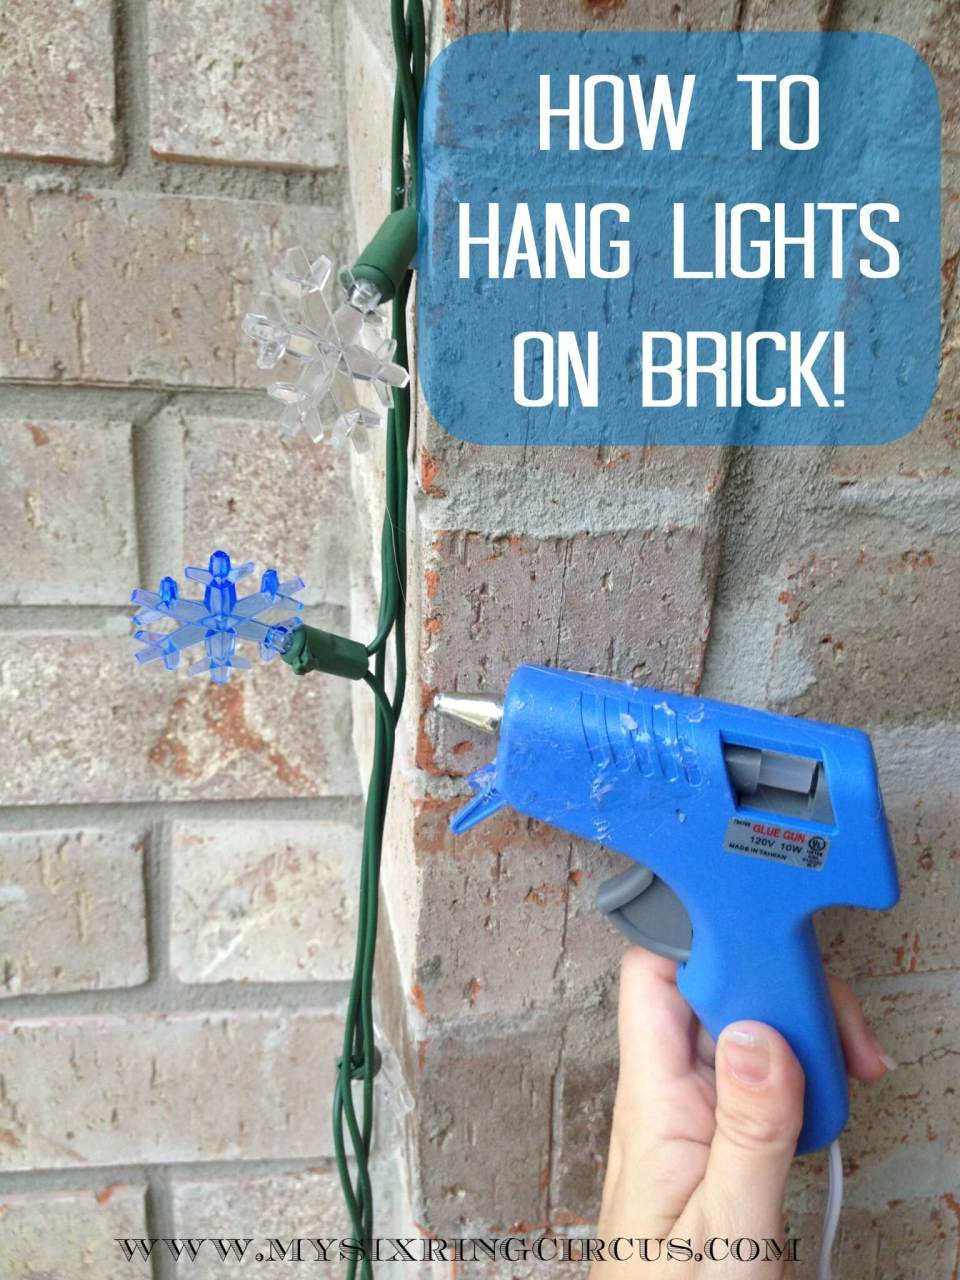 Hanging Lights on Brick | Last Minute Christmas Ideas and Hacks